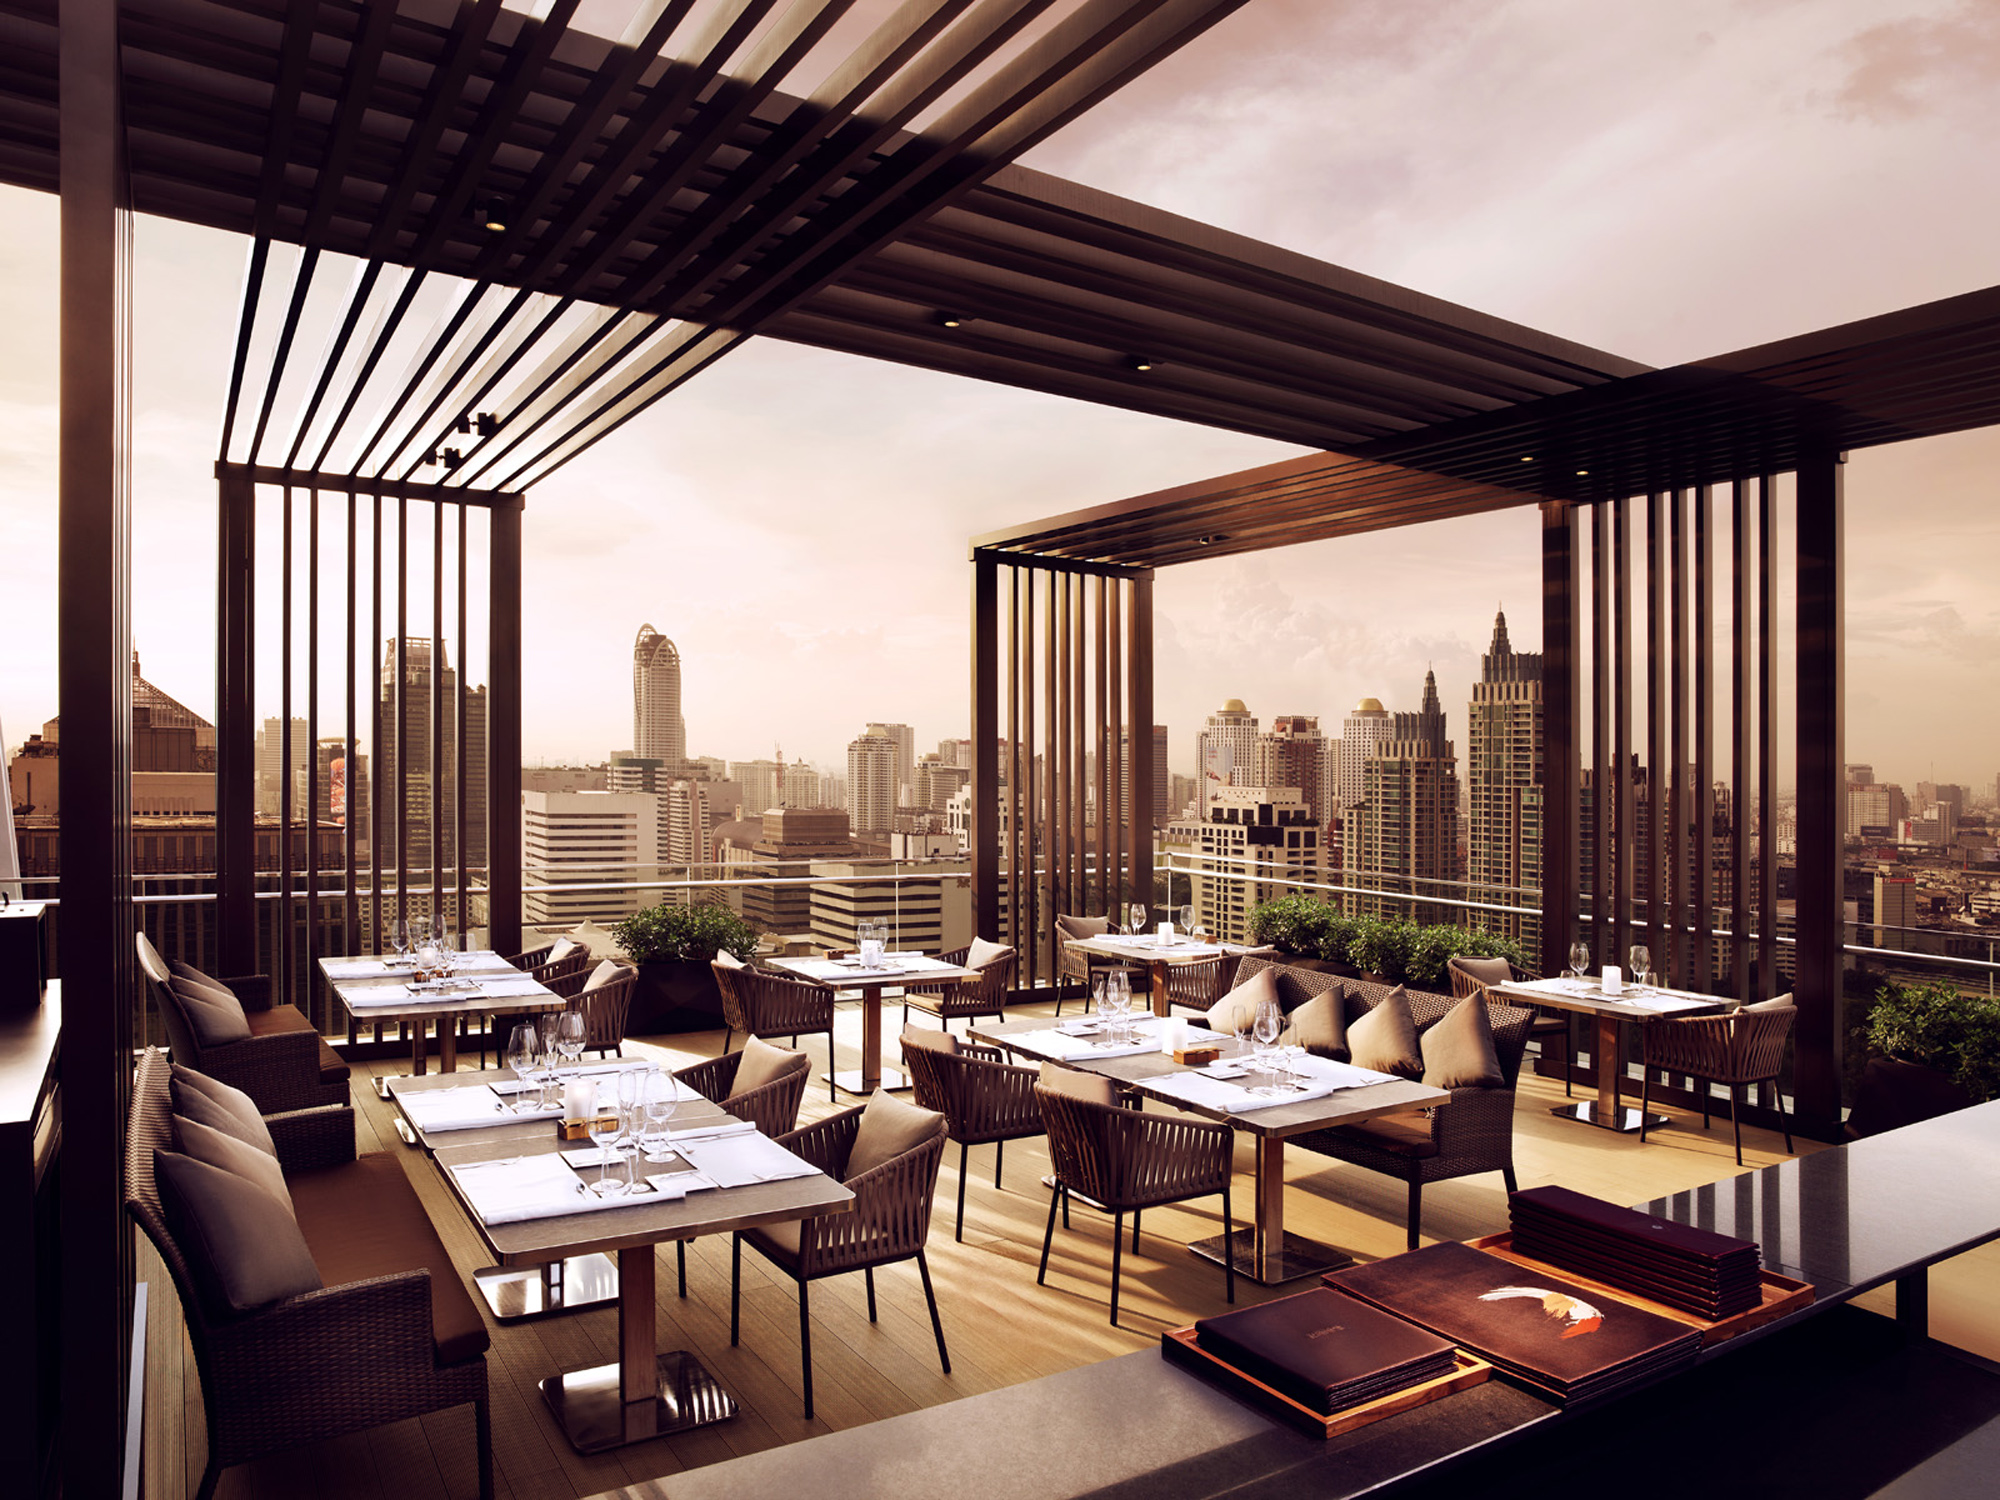 Two star michelin chef becker plans ace service at elements for Becker study plan